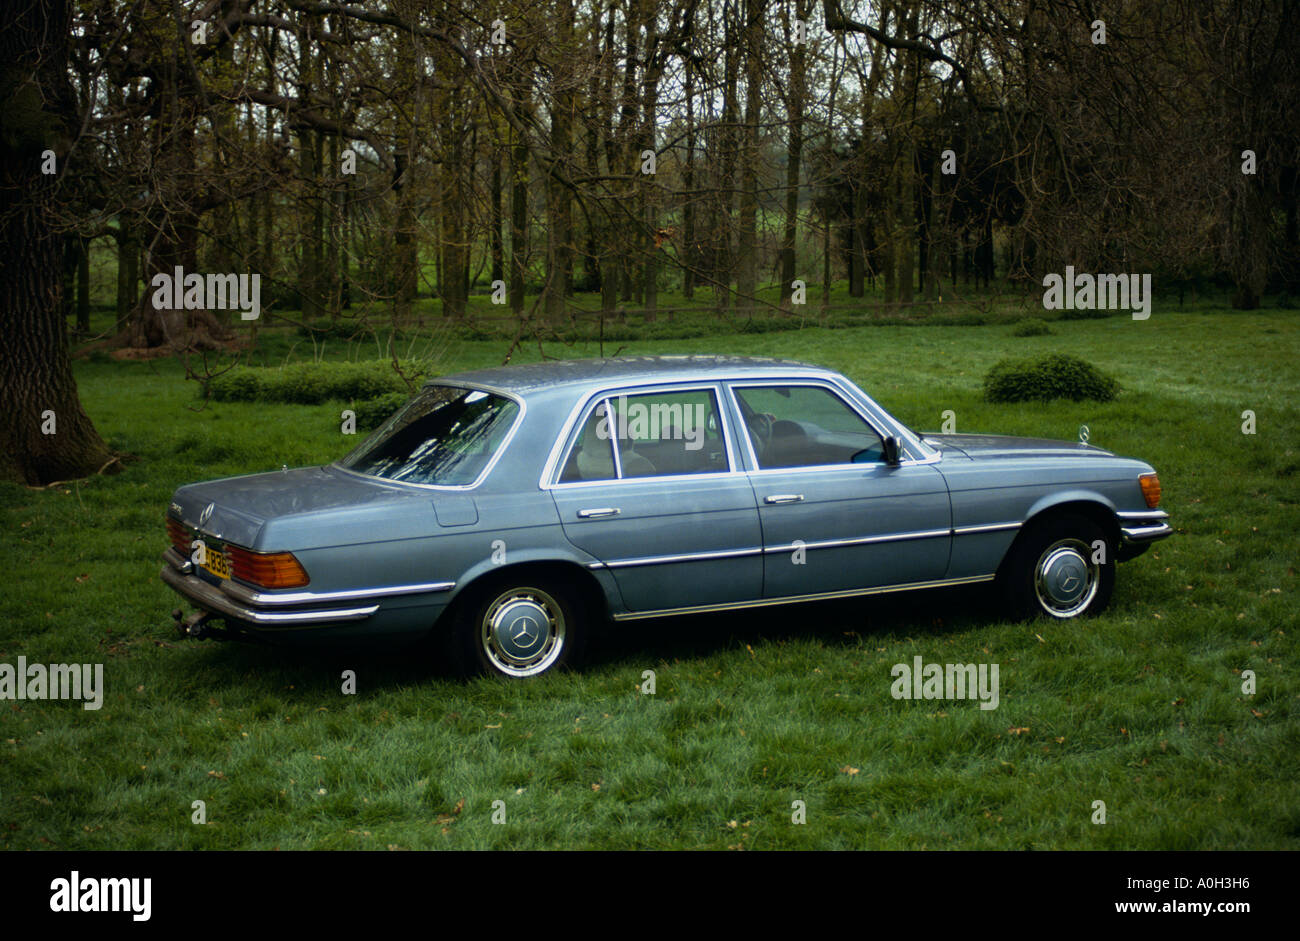 Mercedes benz 280se s class 1972 to 1980 w116 stock for Mercedes benz stock